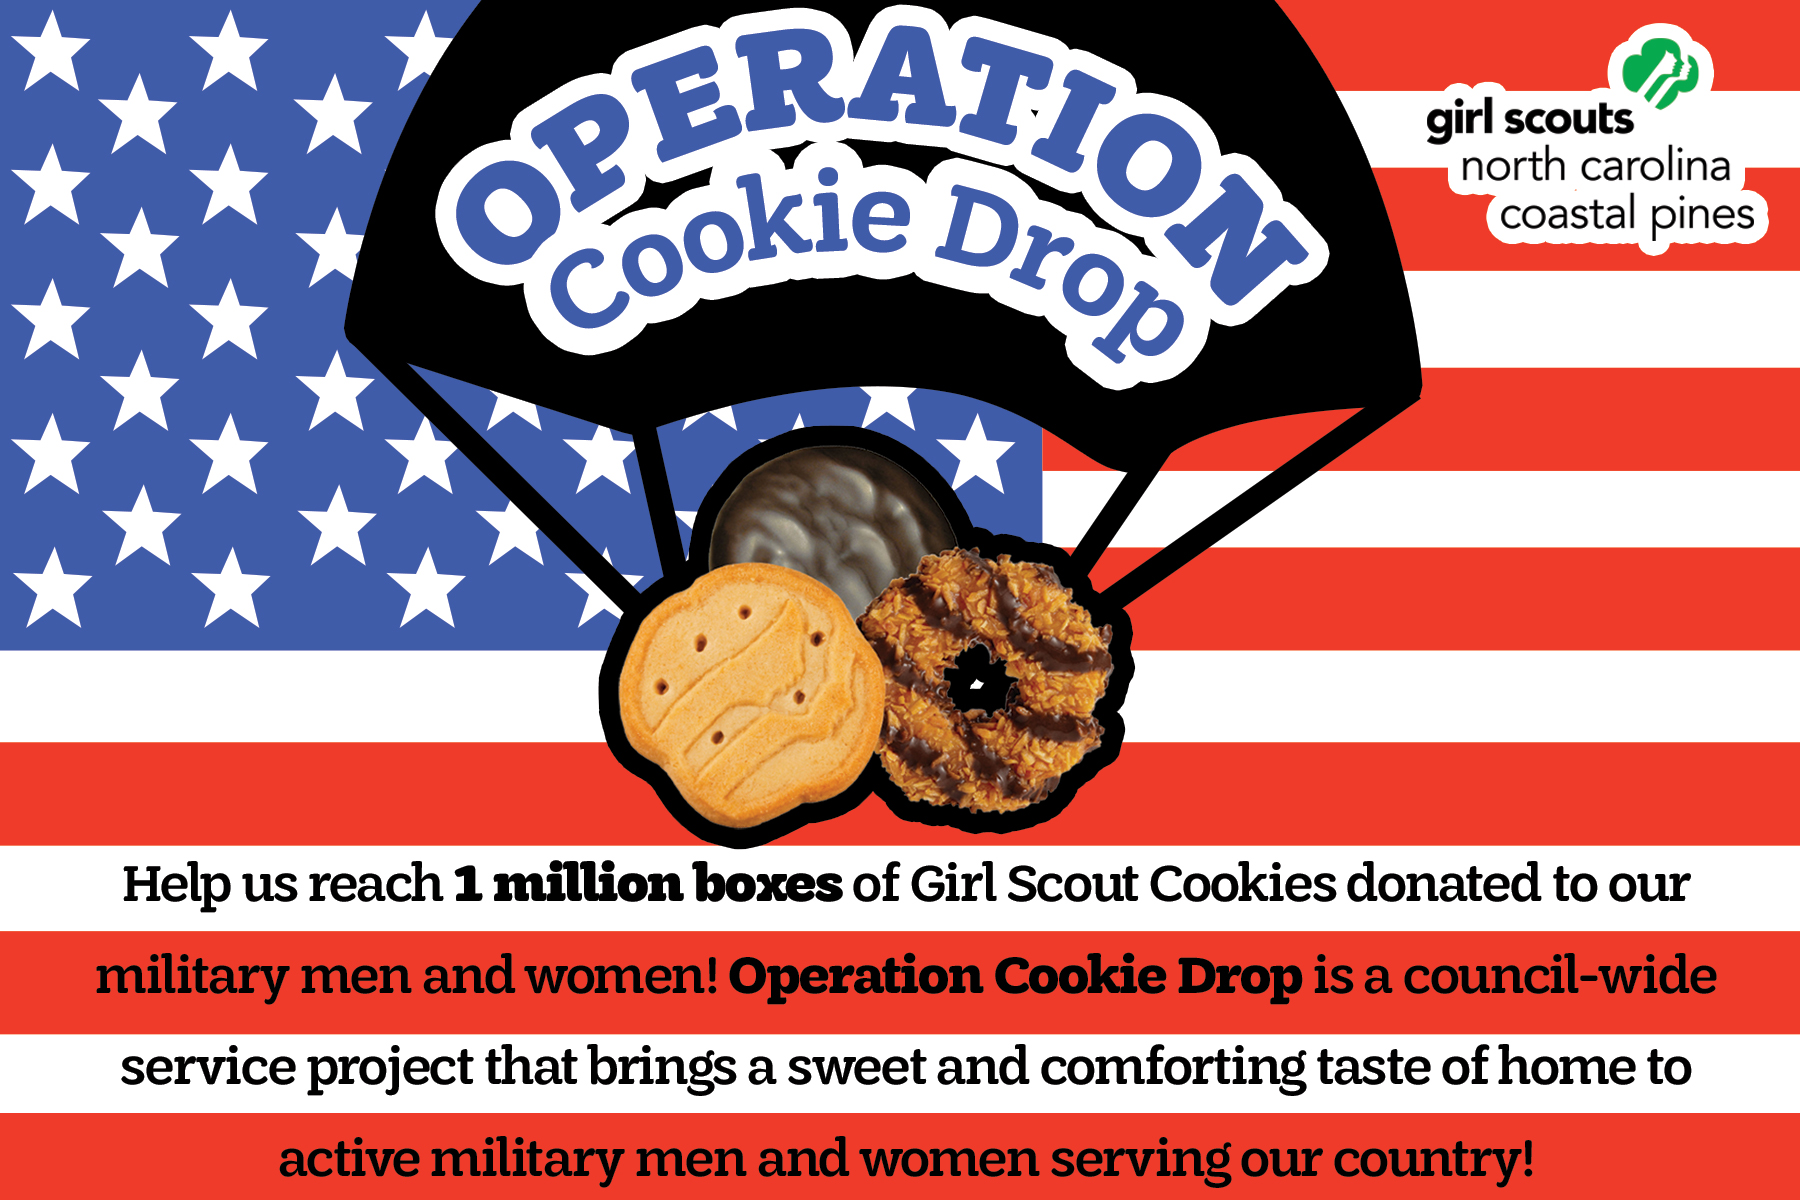 operation cookie drop girl scouts of nc coastal pines